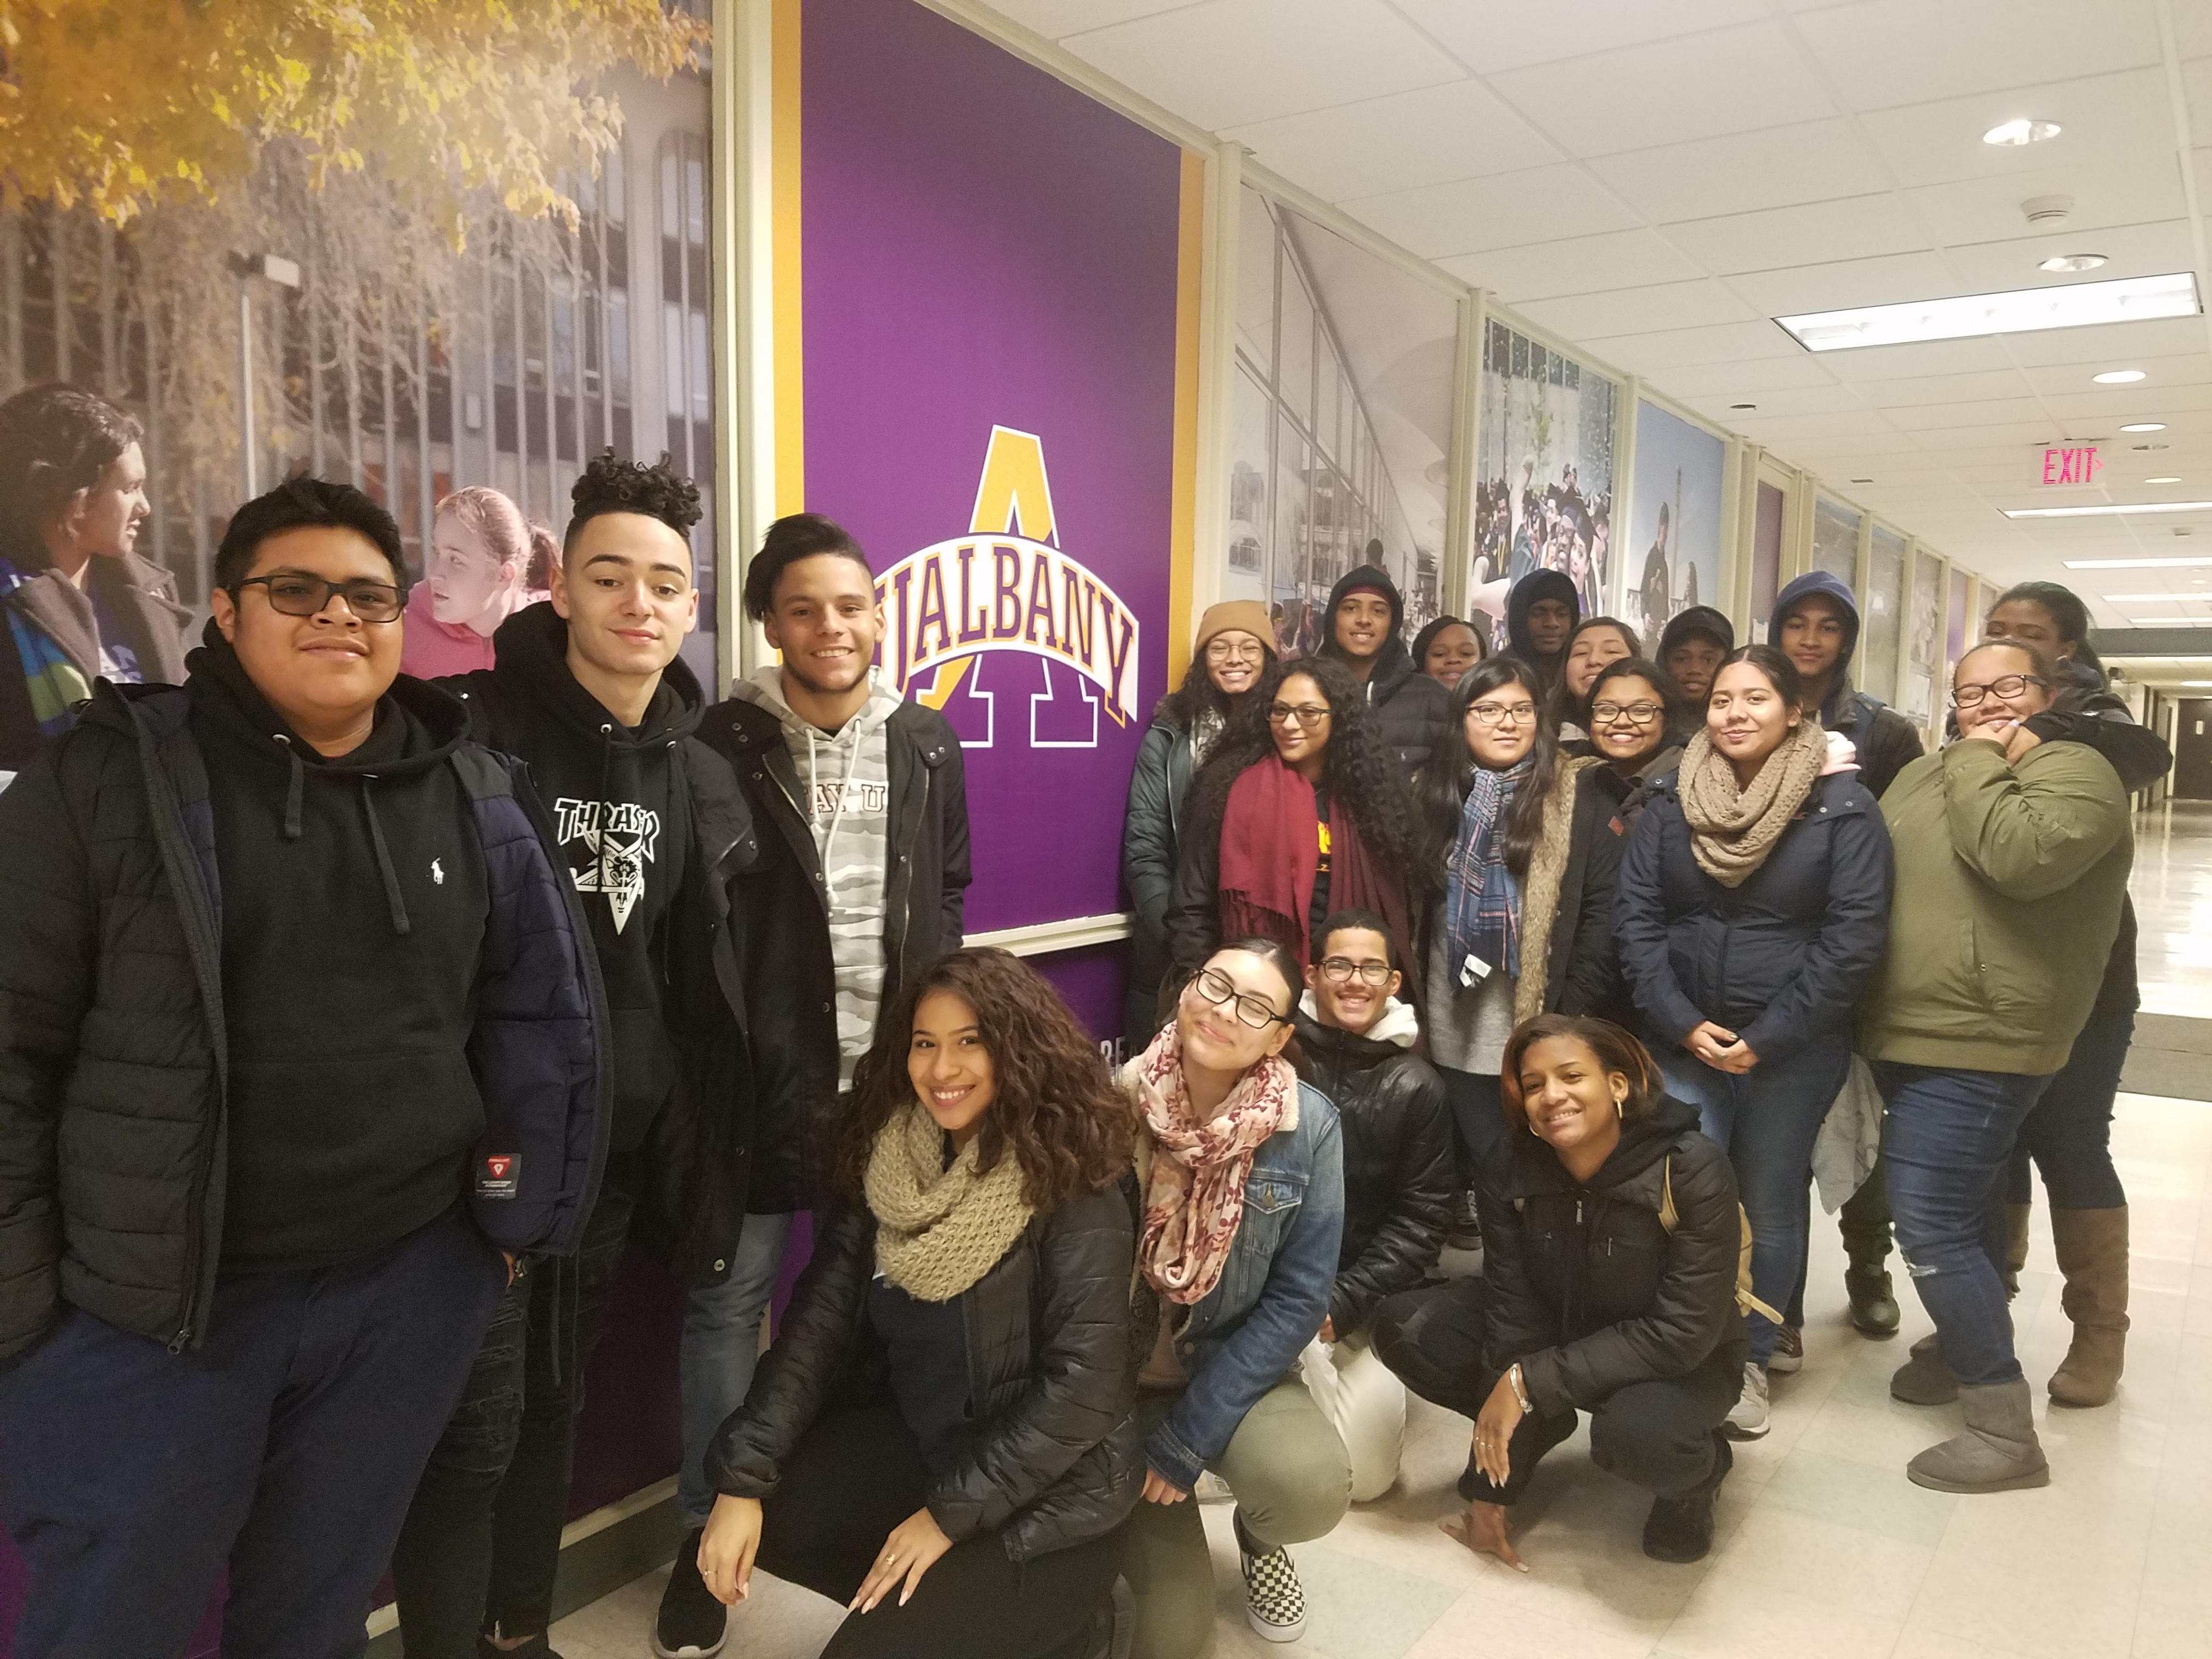 College trip to University of Albany